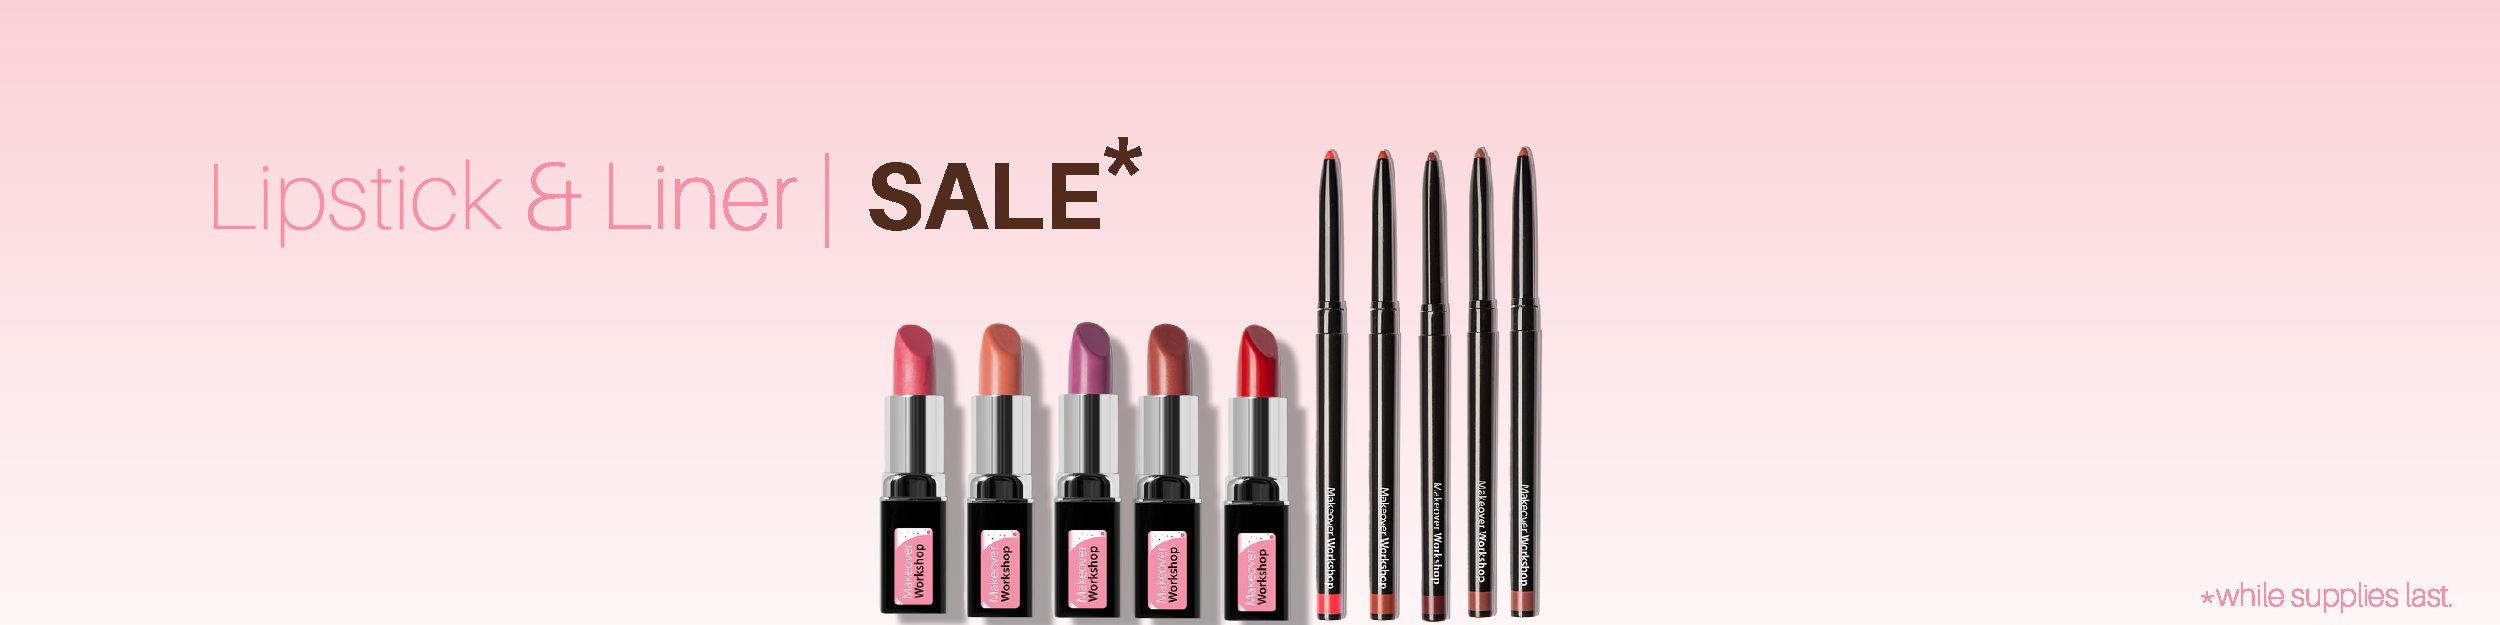 up to 55% off - added Lipsticks Colors!